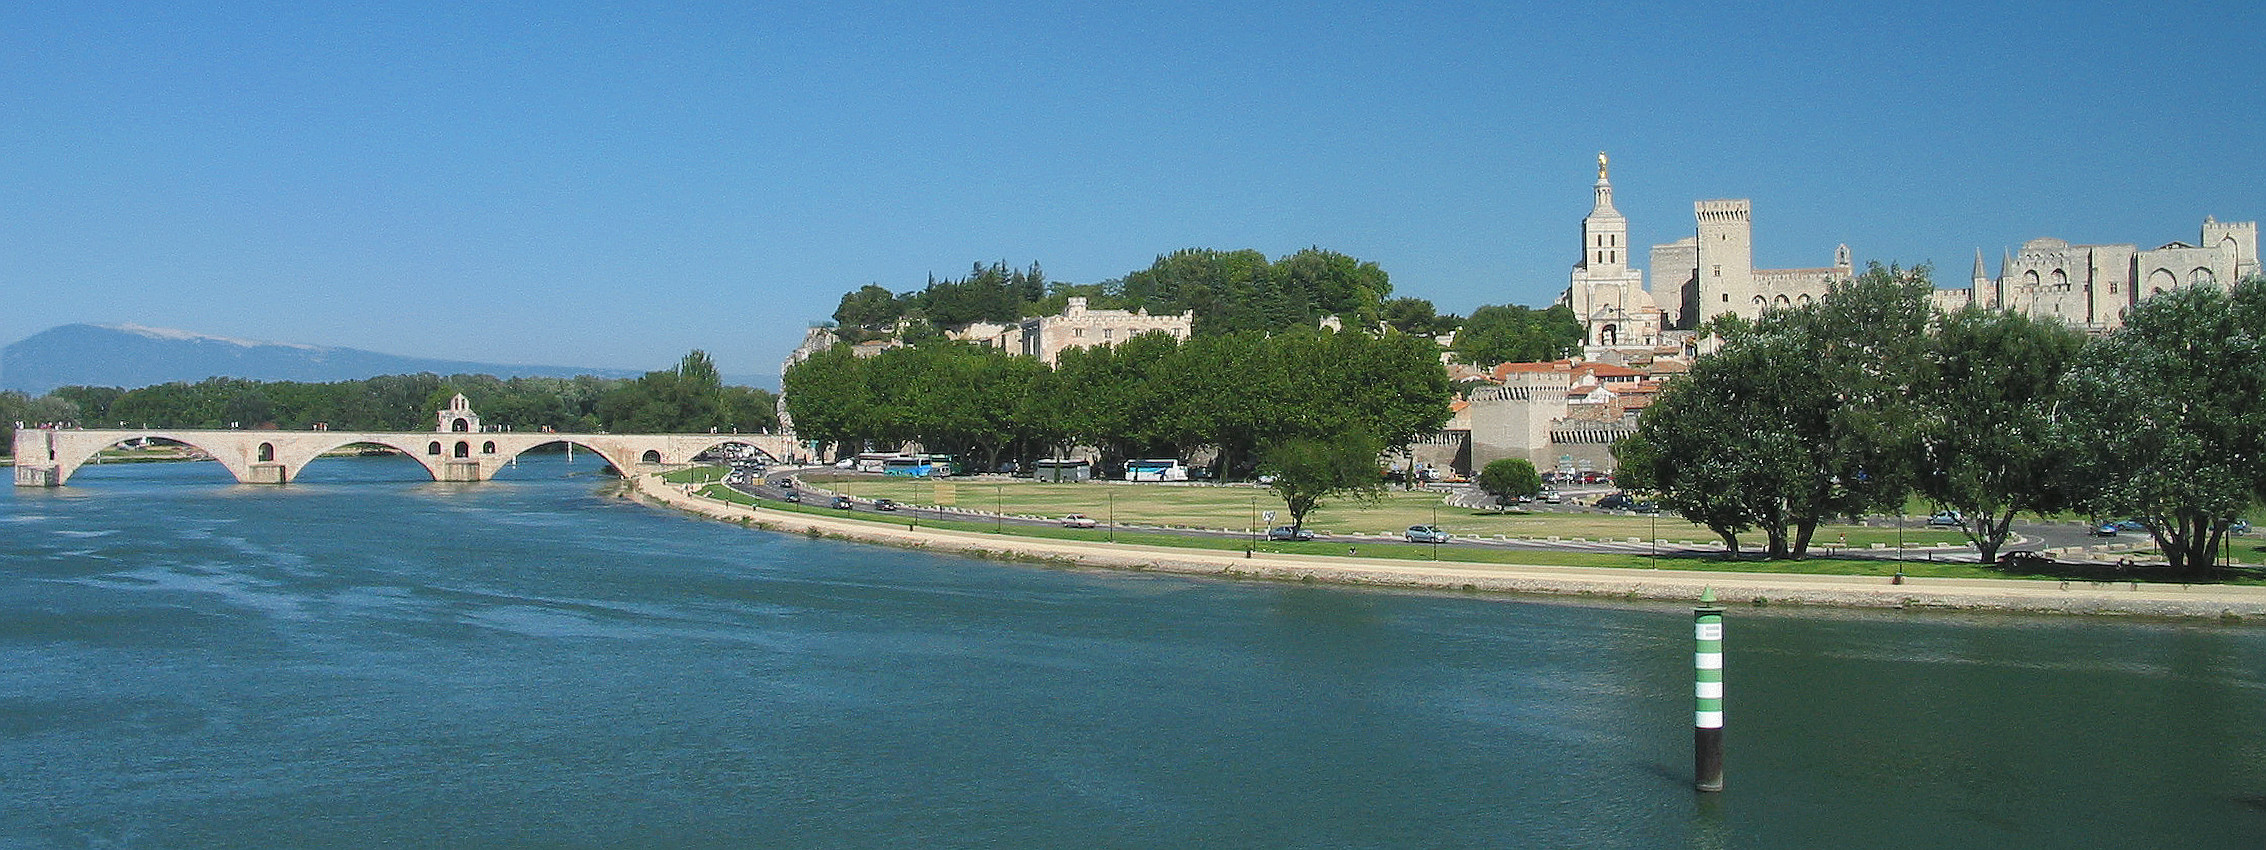 Panoramic view of Avignon